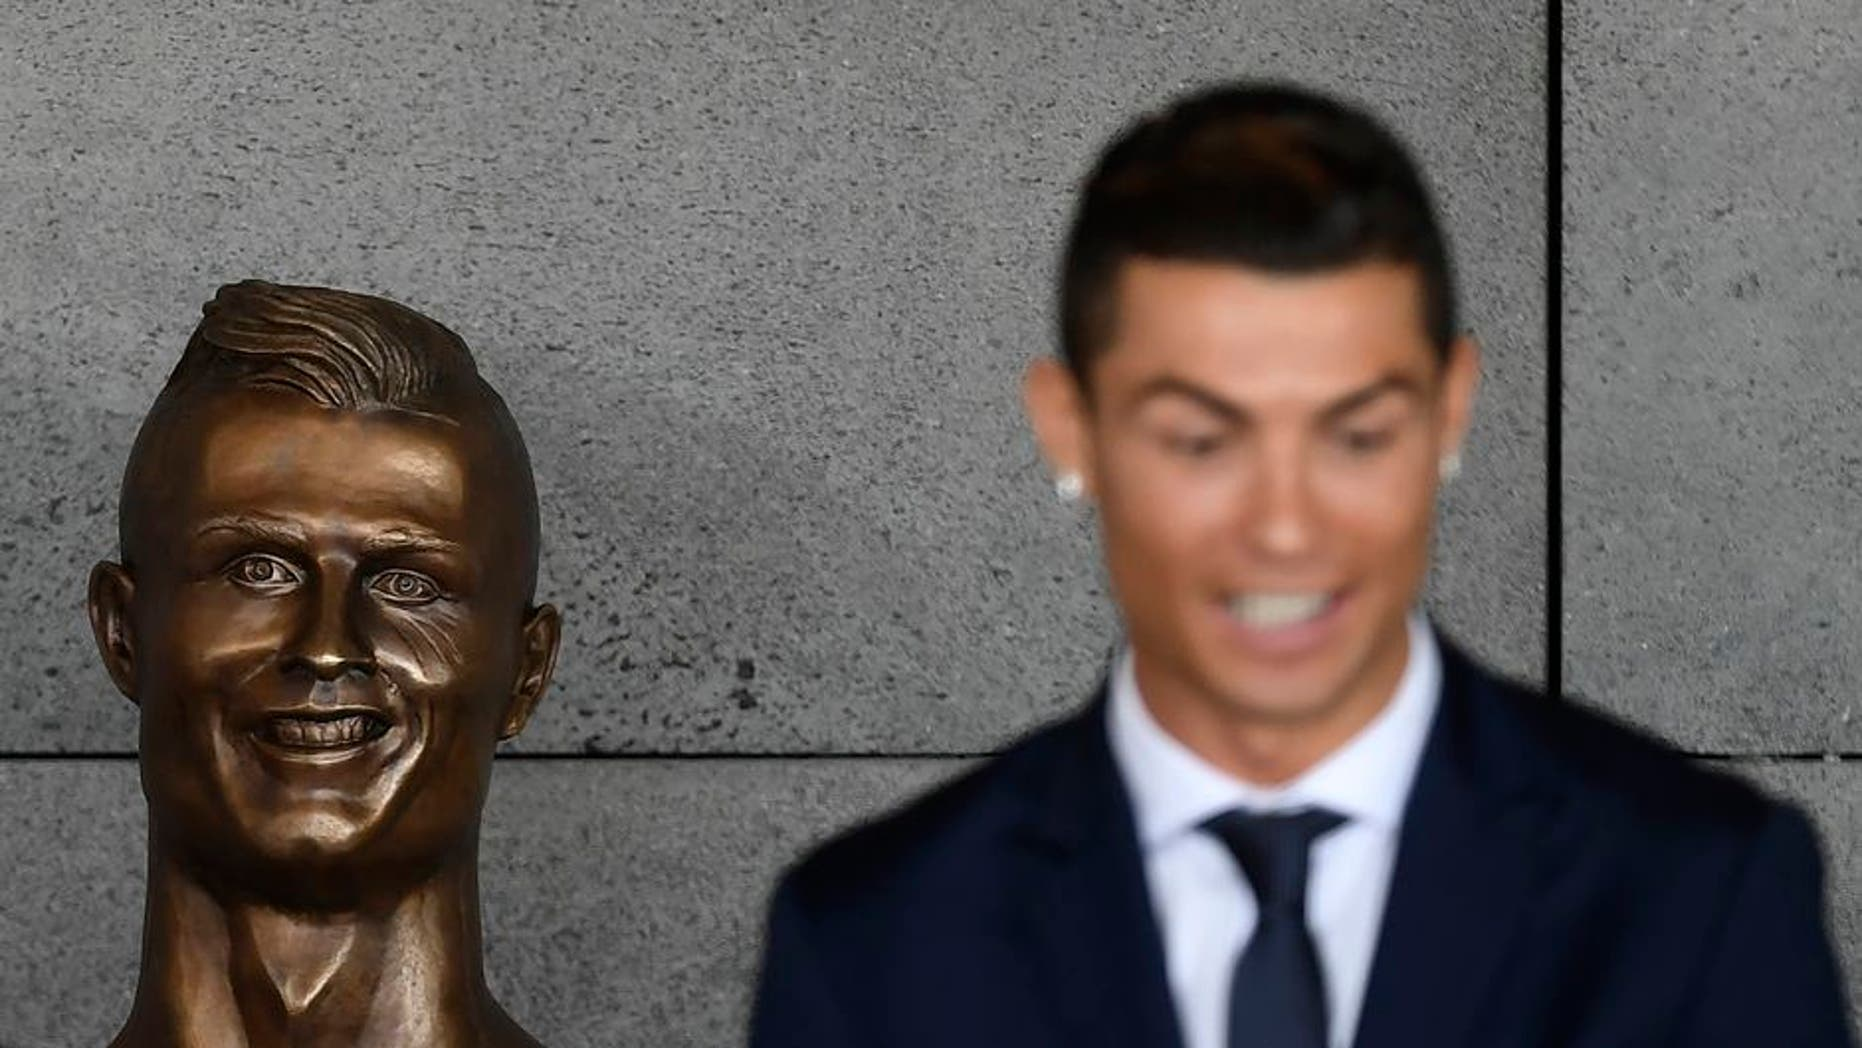 """Portuguese footballer Cristiano Ronaldo stands beside a bust presented during a ceremony to rename Madeira's airport in Funchal as """"Cristiano Ronaldo"""", on Madeira island, on March 29, 2017. Airport of Madeira, the birthplace of Portuguese footballer Cristiano Ronaldo, was renamed today in honor of the quadruple Ballon d'or and captain of the Portuguese team sacred European champion last summer. / AFP PHOTO / FRANCISCO LEONG (Photo credit should read FRANCISCO LEONG/AFP/Getty Images)"""